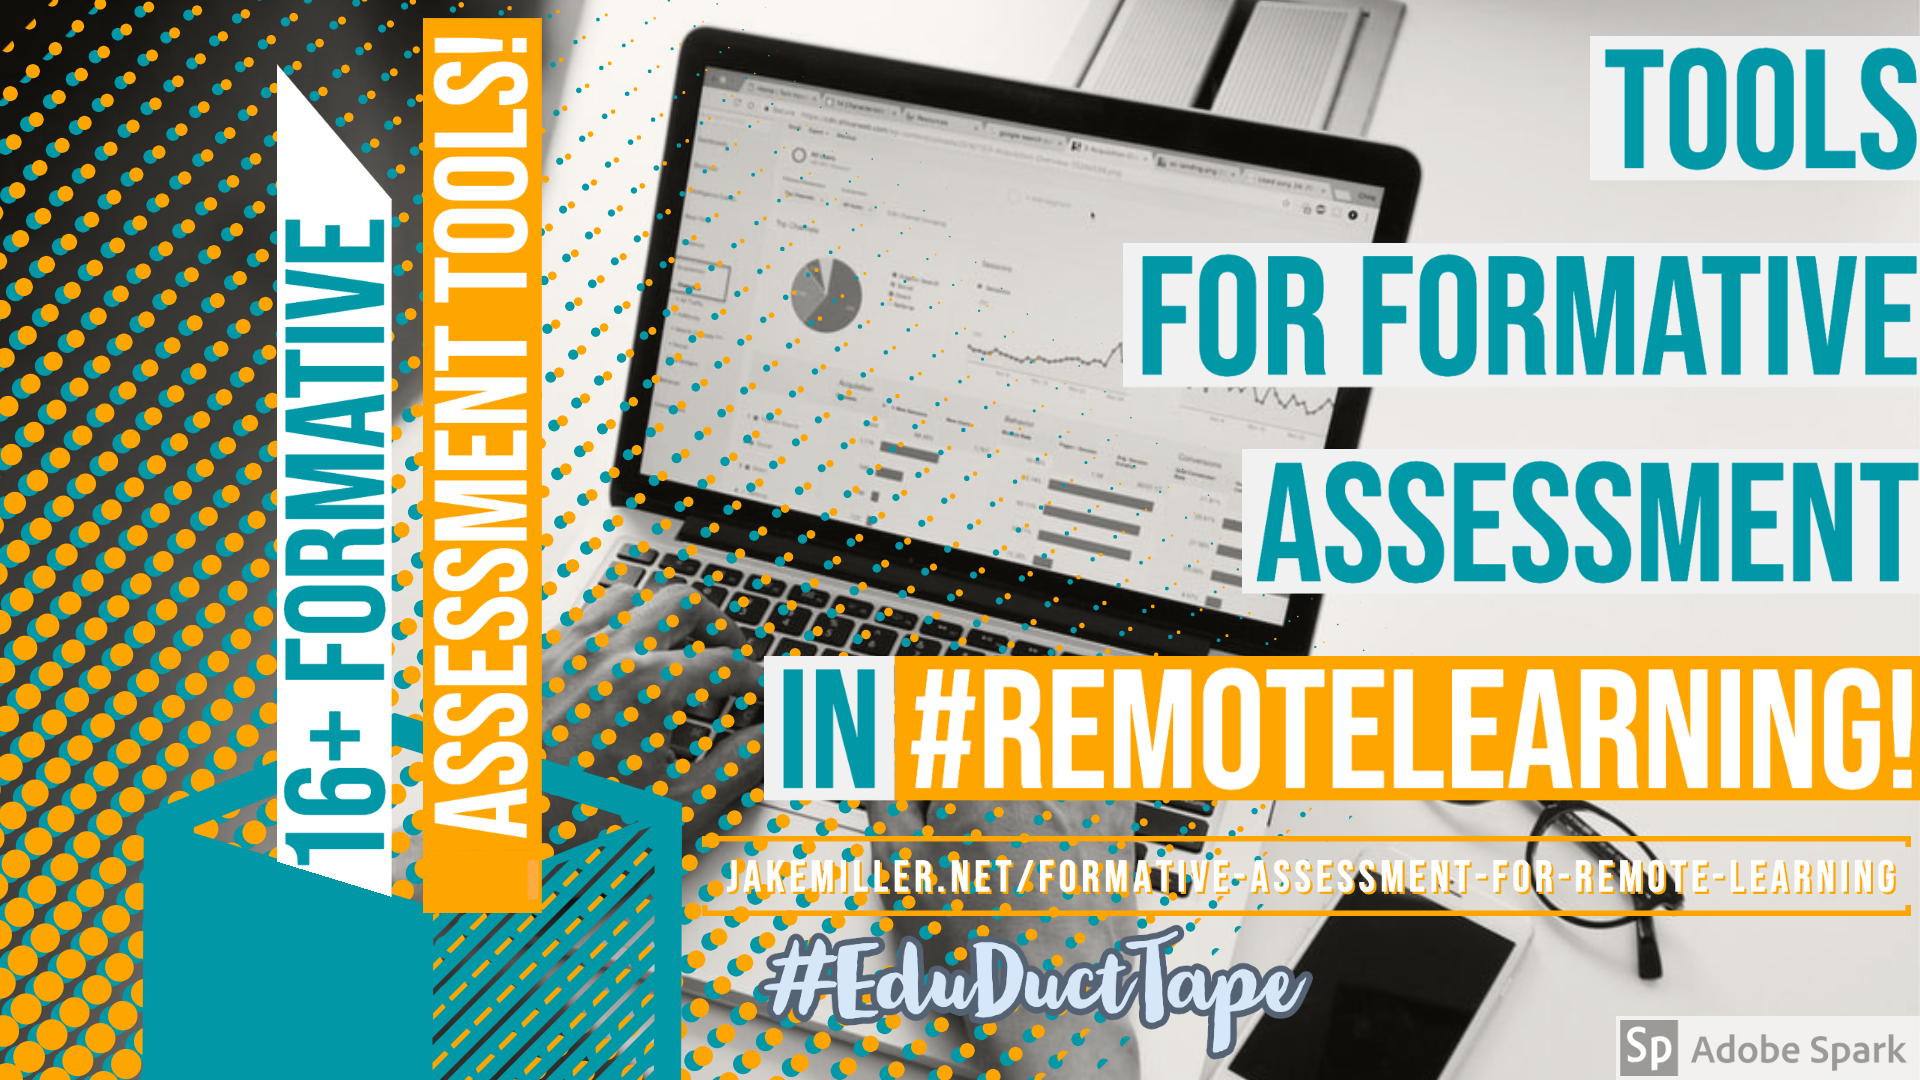 Title Image for Post. Reads: 16+ Formative Assessment Tools for #RemoteLearning and includes the URL for the post.